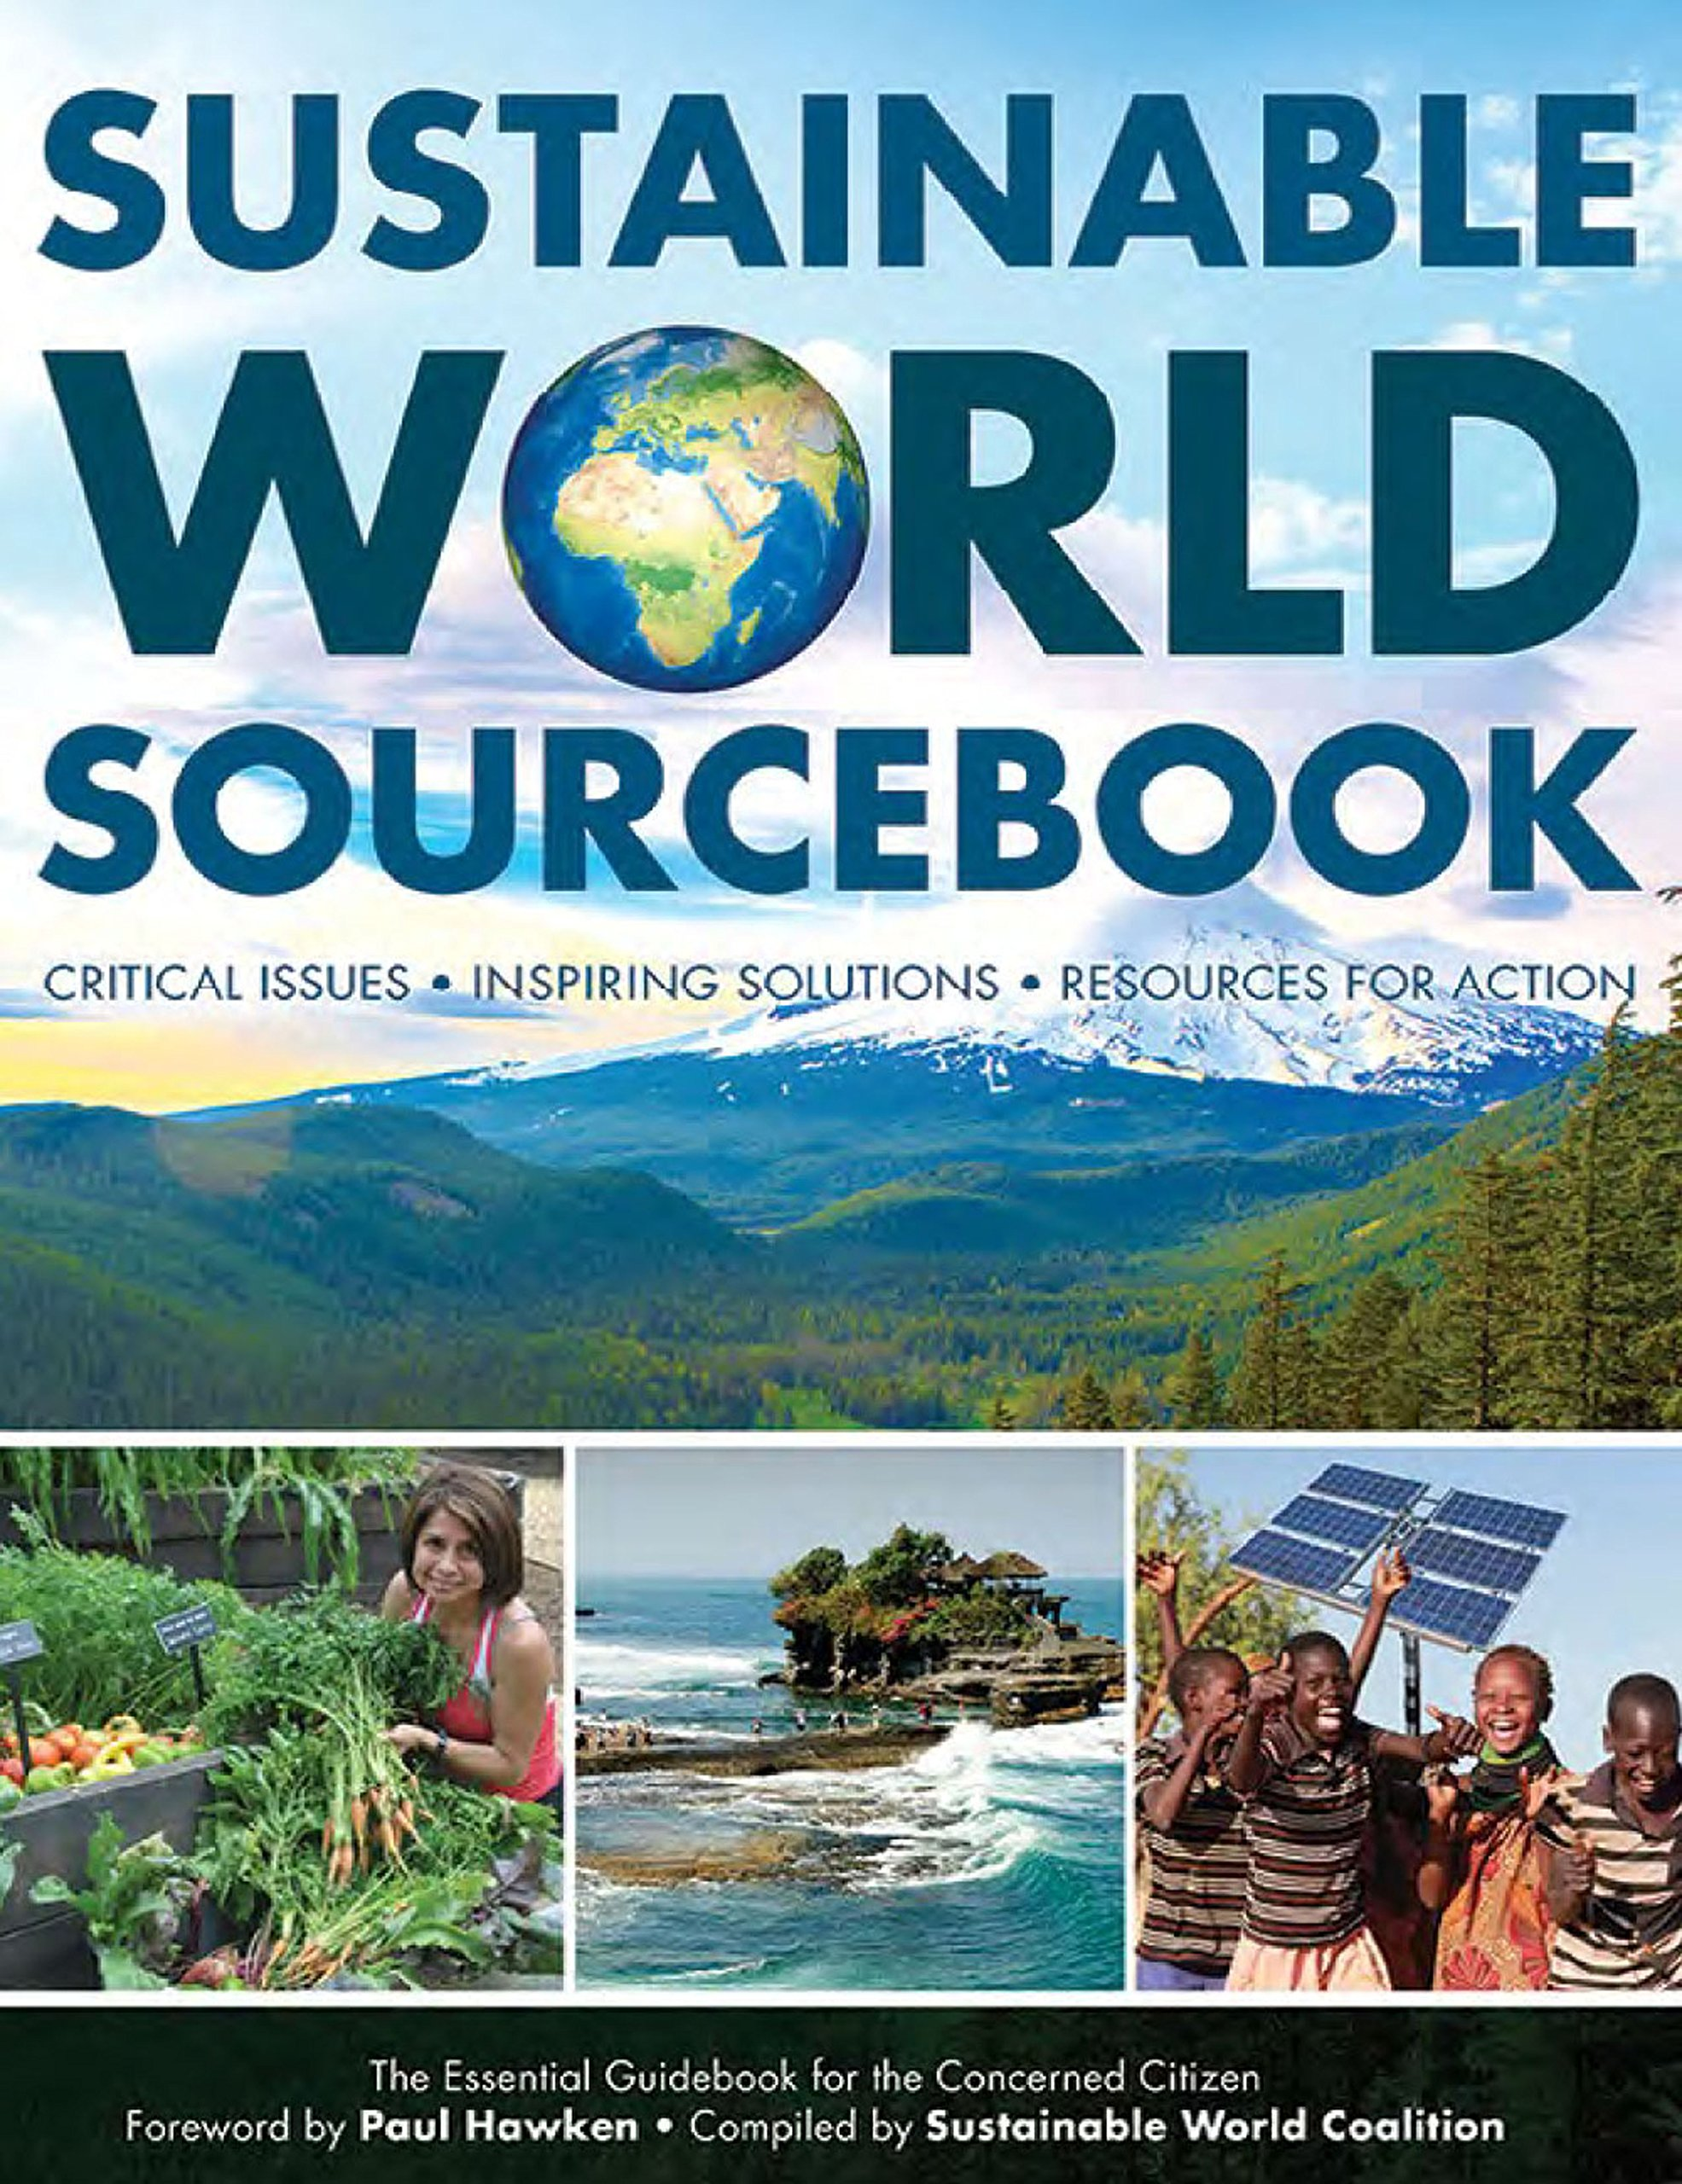 Sustainable World Sourcebook, Critical Issues ? Inspiring Solutions ? Resources for Action, the Essential Guidebook for the Concerned Citizen, Vinit Allen